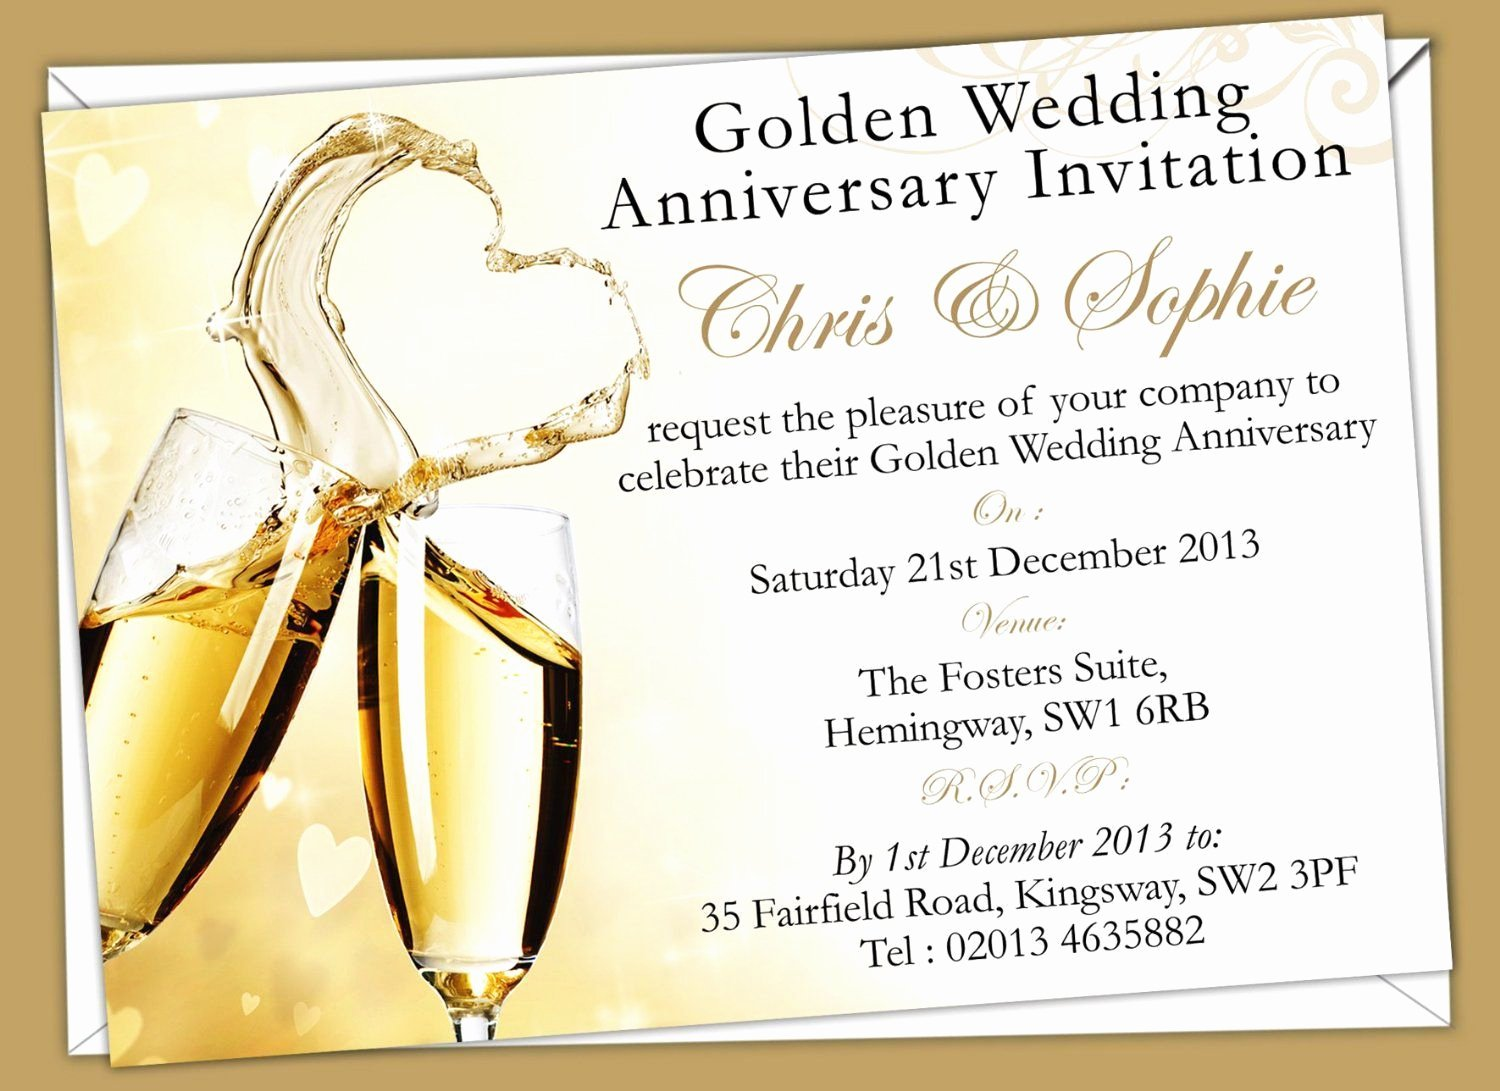 Wedding Anniversary Invite Template Beautiful Golden Wedding Anniversary Invitation Golden Wedding